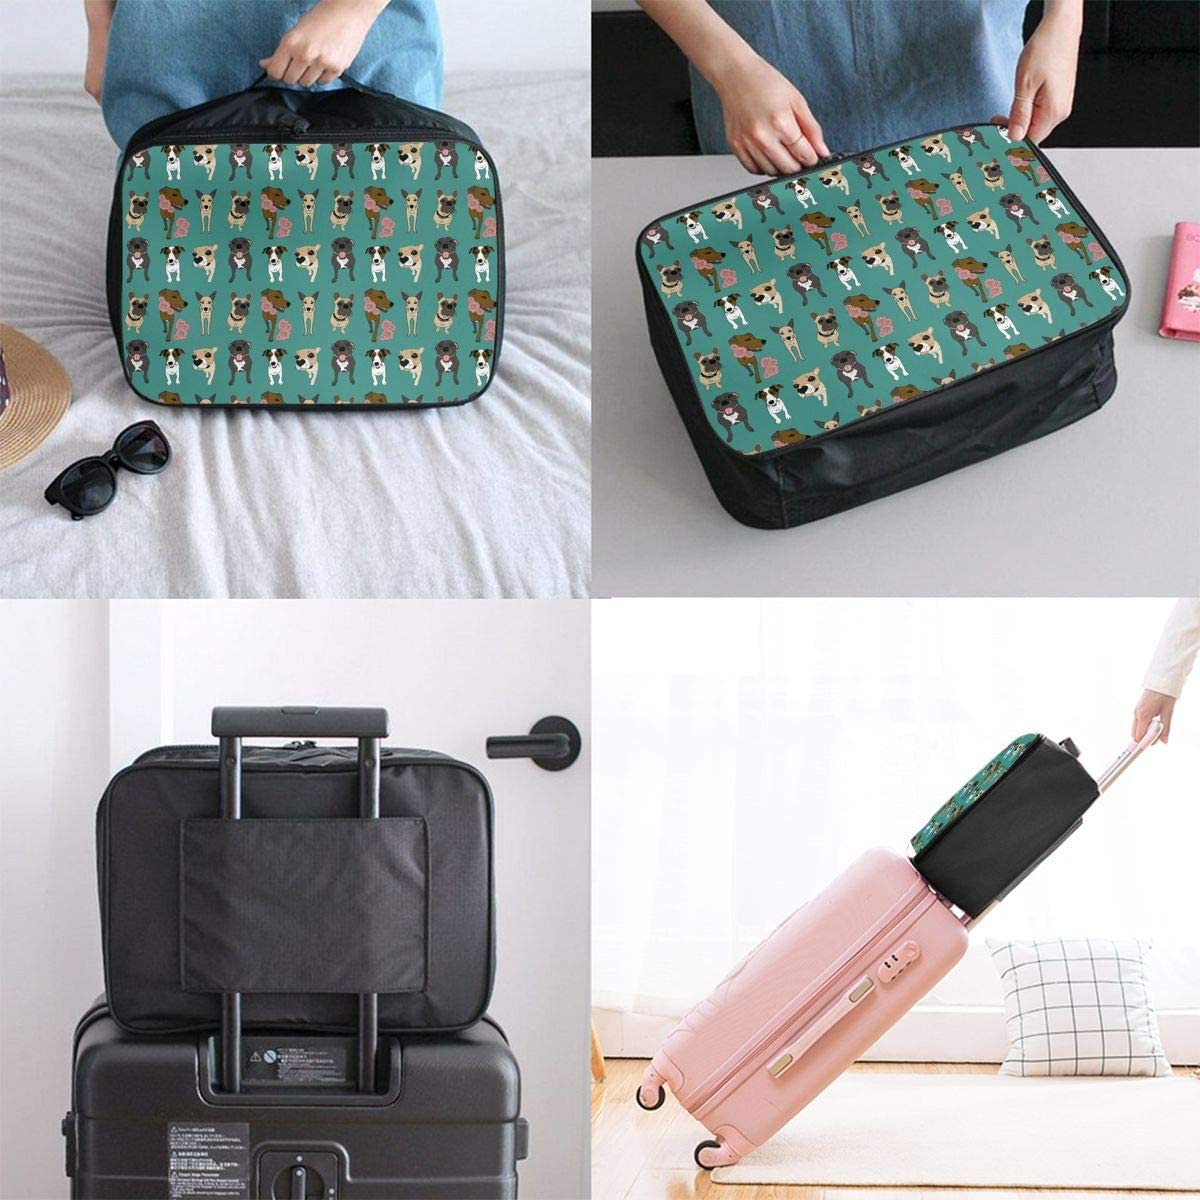 Doggy Pattern Travel Carry-on Luggage Weekender Bag Overnight Tote Flight Duffel In Trolley Handle